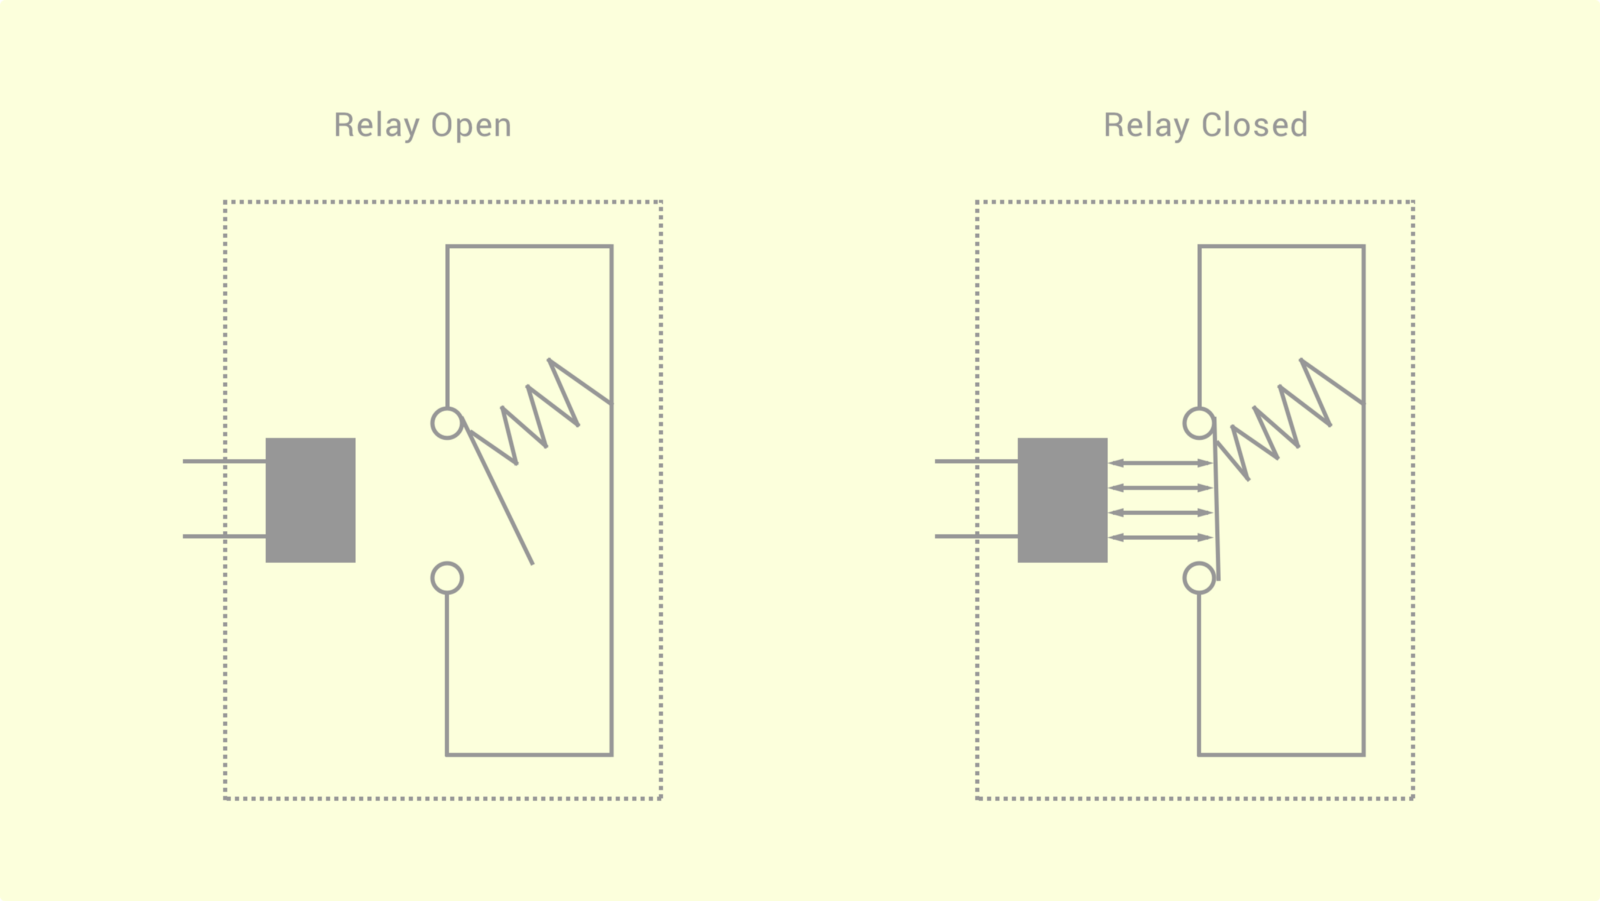 Android Things Electronics 101 Exploring Medium Fundamentals Of Electricity Types Circuits Open We Can Use Relays Within As An Electronic Switch To Allow Current Pass Through Given A Certain Condition Perfect Example Is Their With